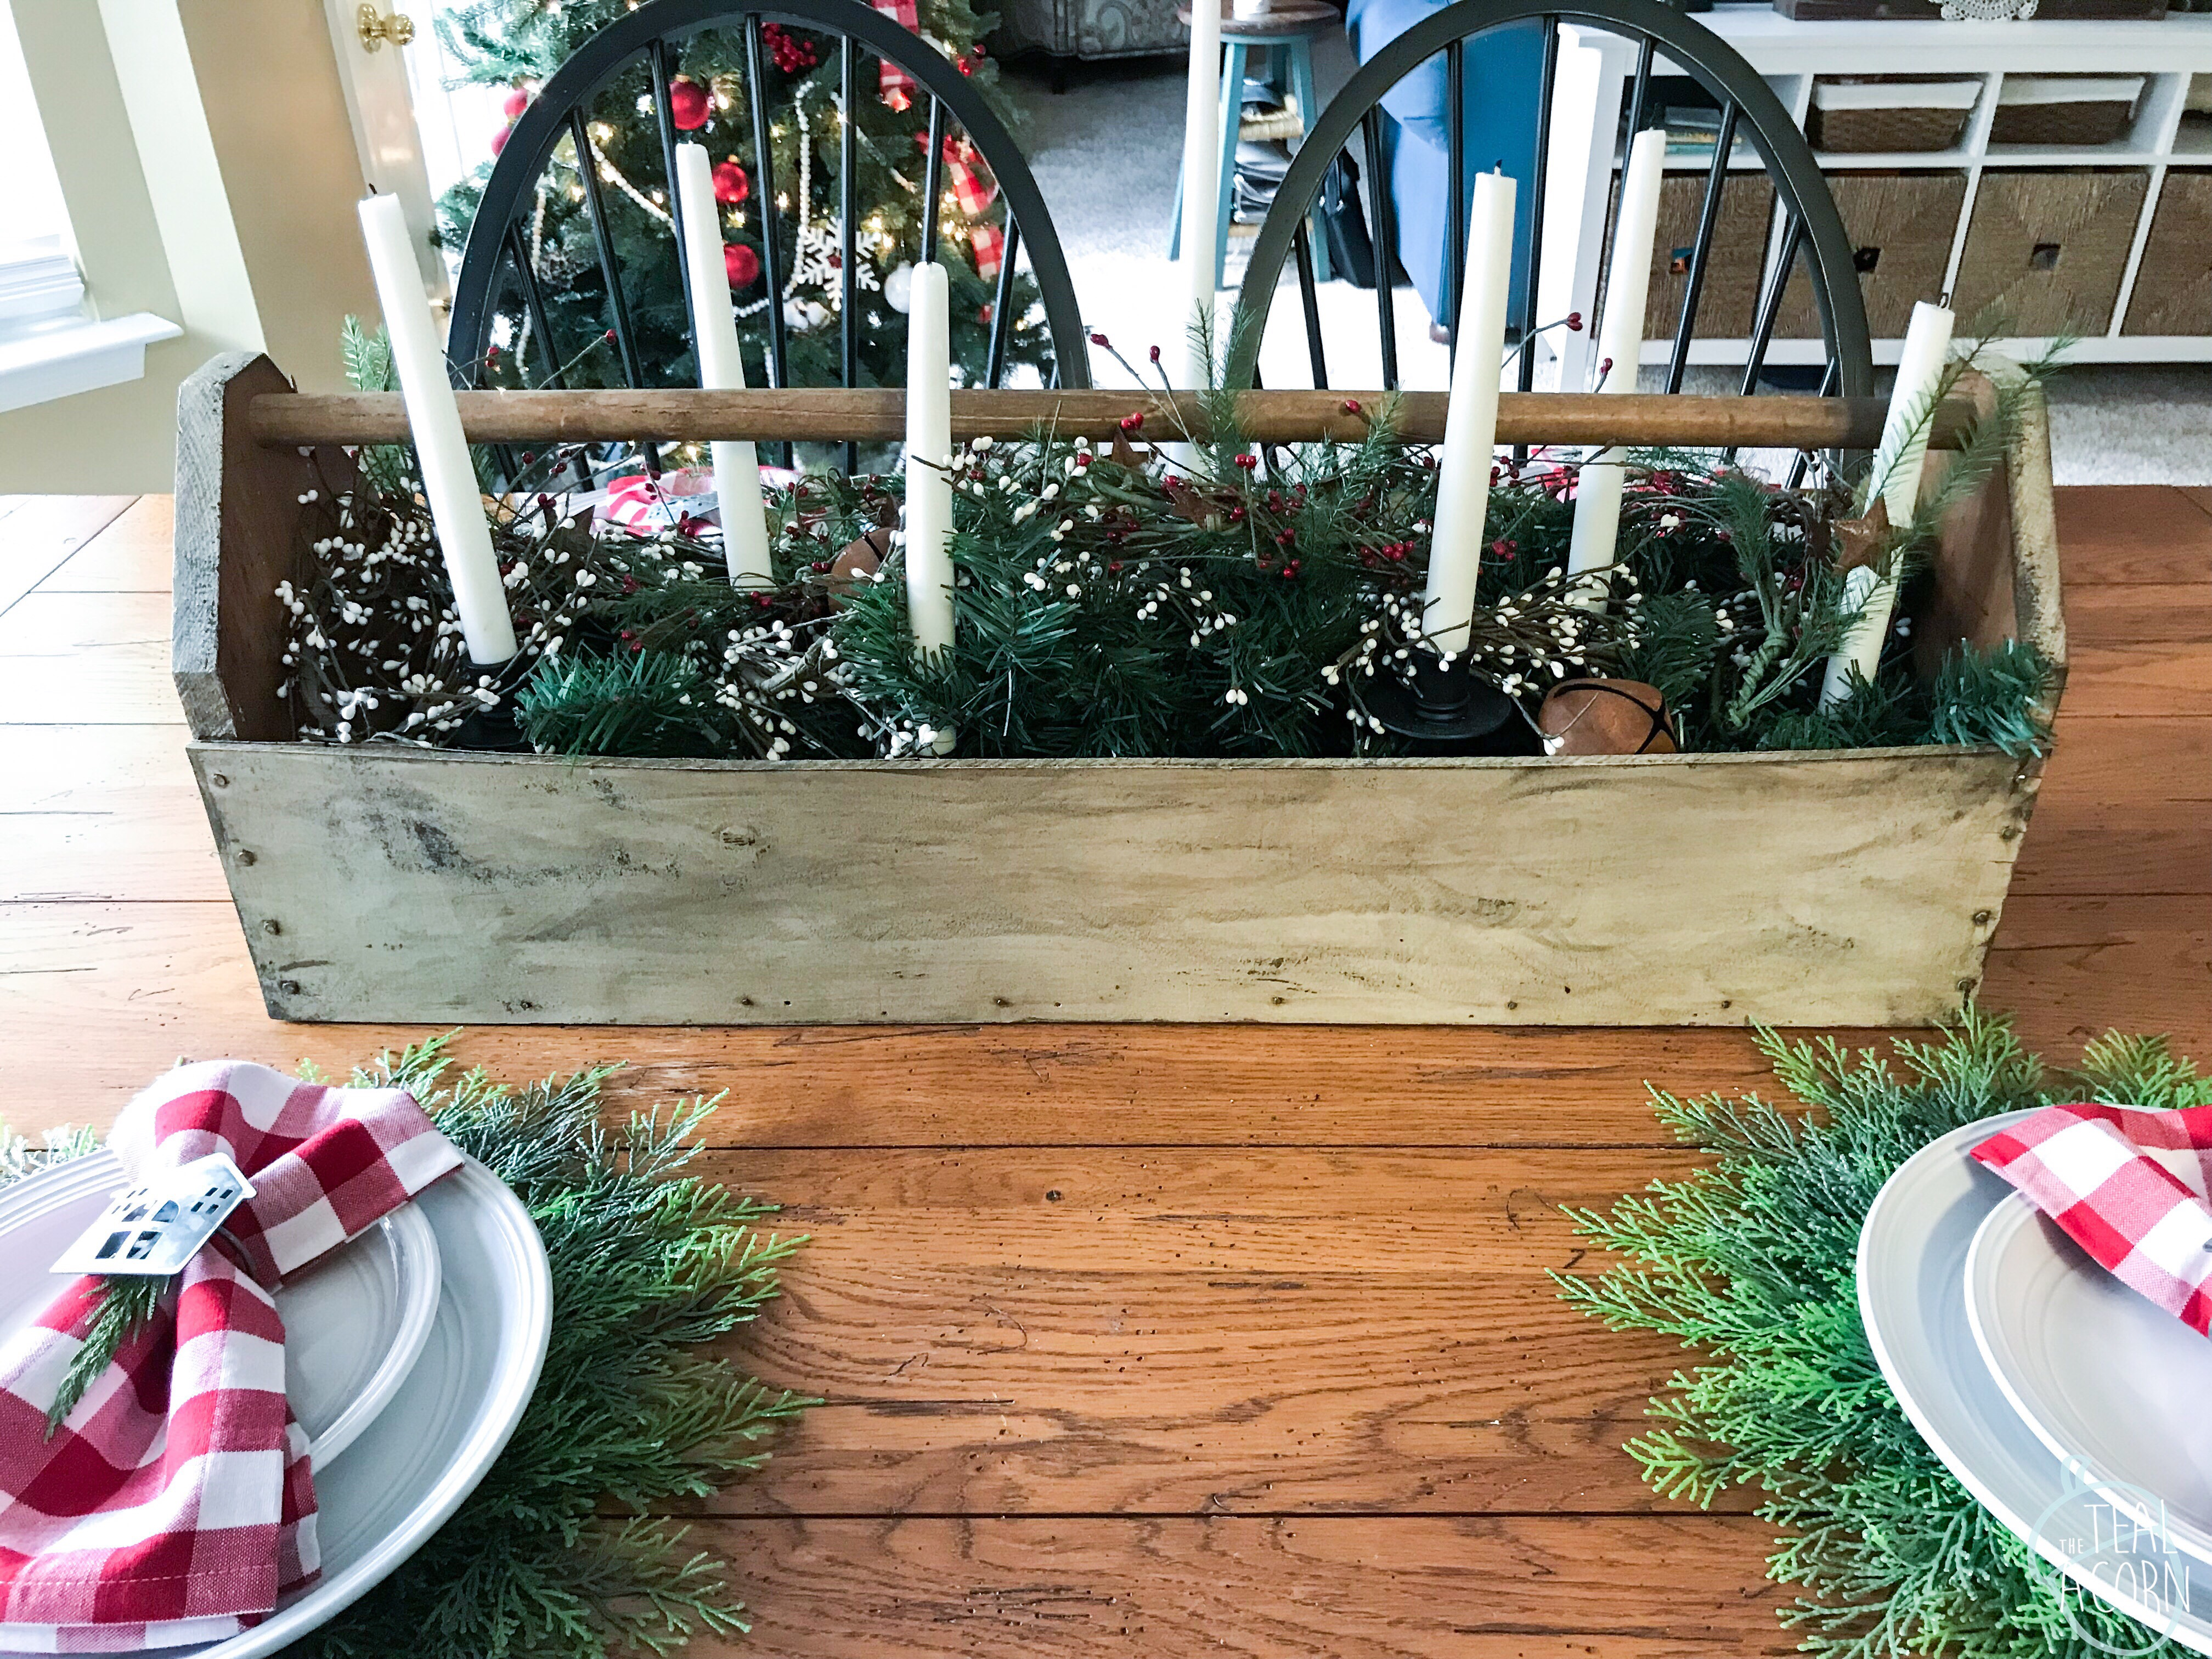 Farmhouse tables cape with vintage carpenter's toolbox as centerpiece filled with garland and candelabra and candlesticks.  Place settings have Pier 1 cypress chargers, white plates, red and white Buffalo check plaid napkins and galvanized metal napkin rings.